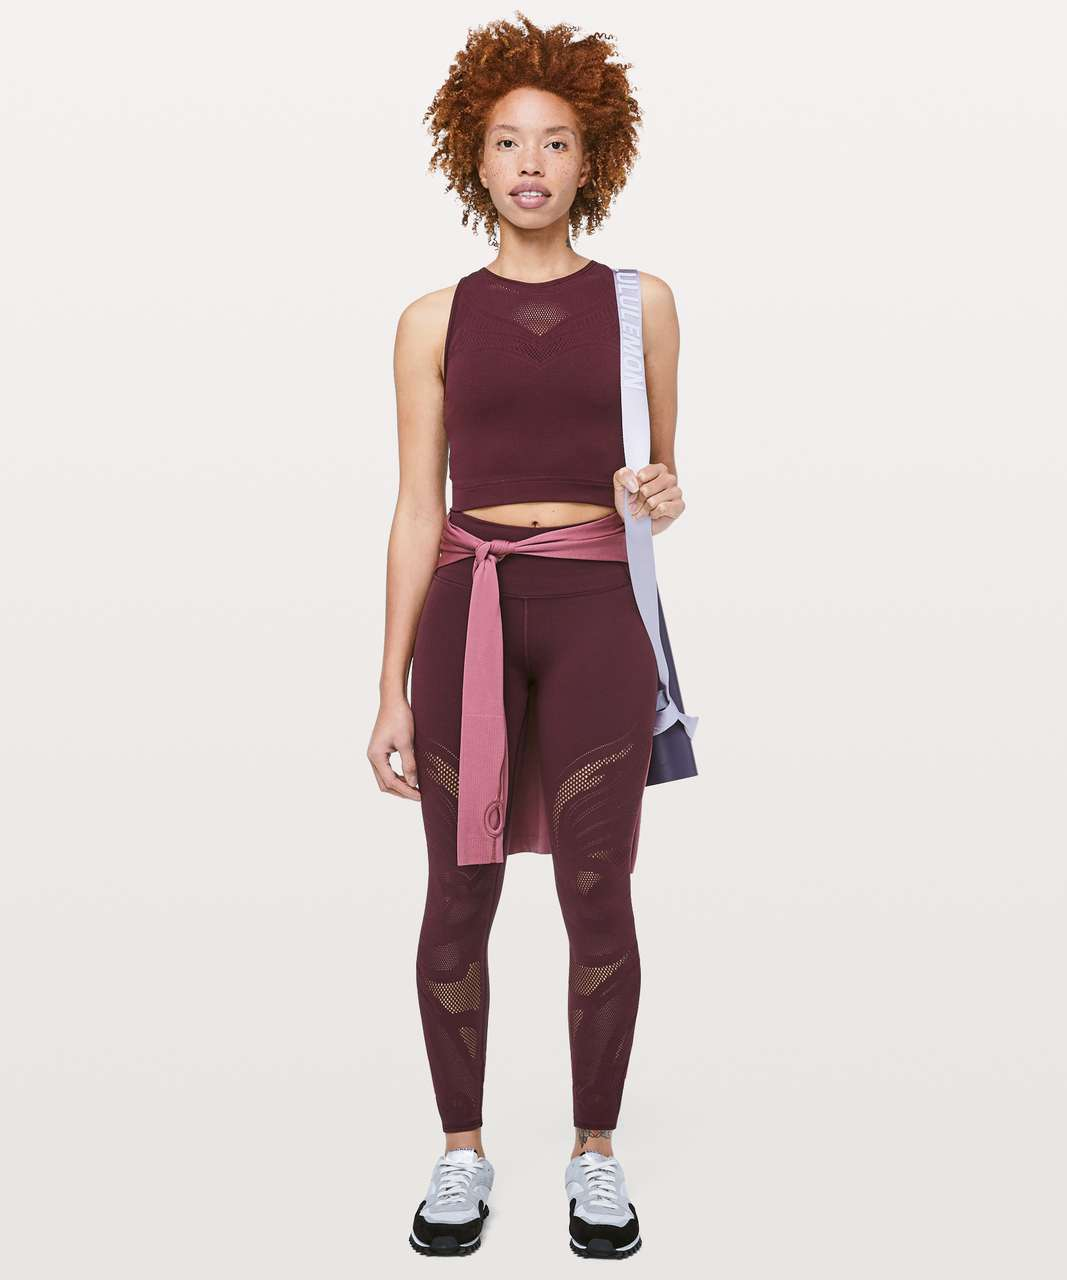 Lululemon Reveal Crop Top *En Avante - Dark Adobe